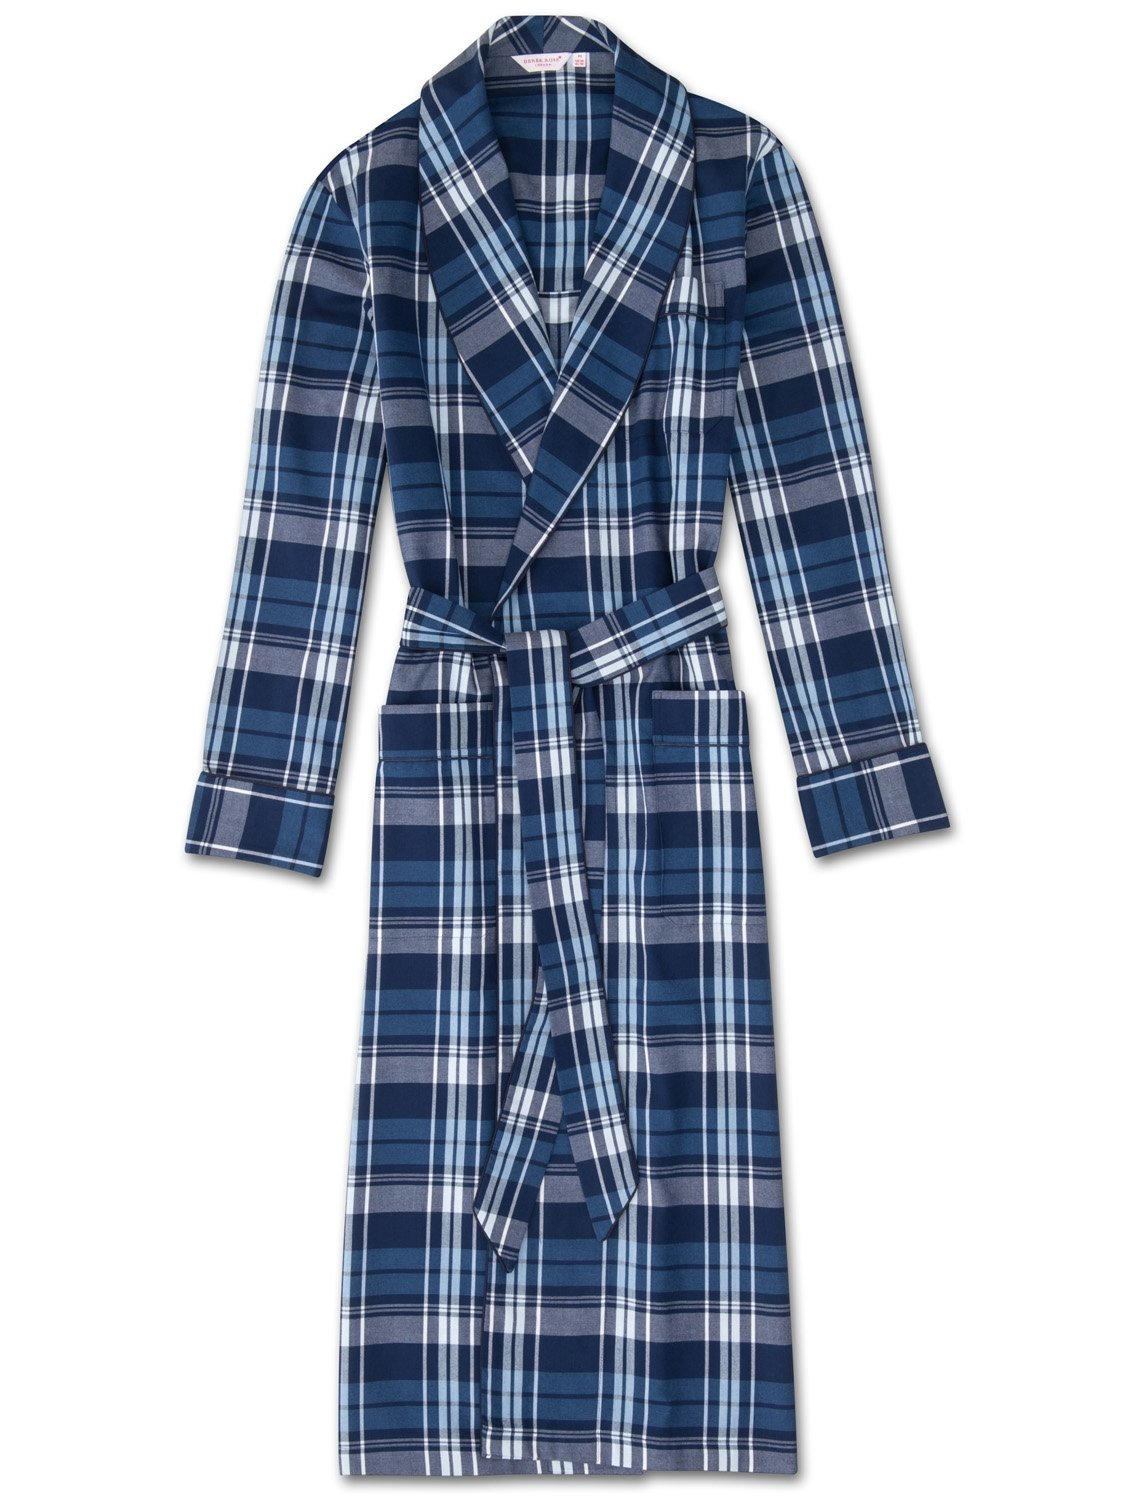 Men's Piped Dressing Gown Ranga 31 Brushed Cotton Check Navy